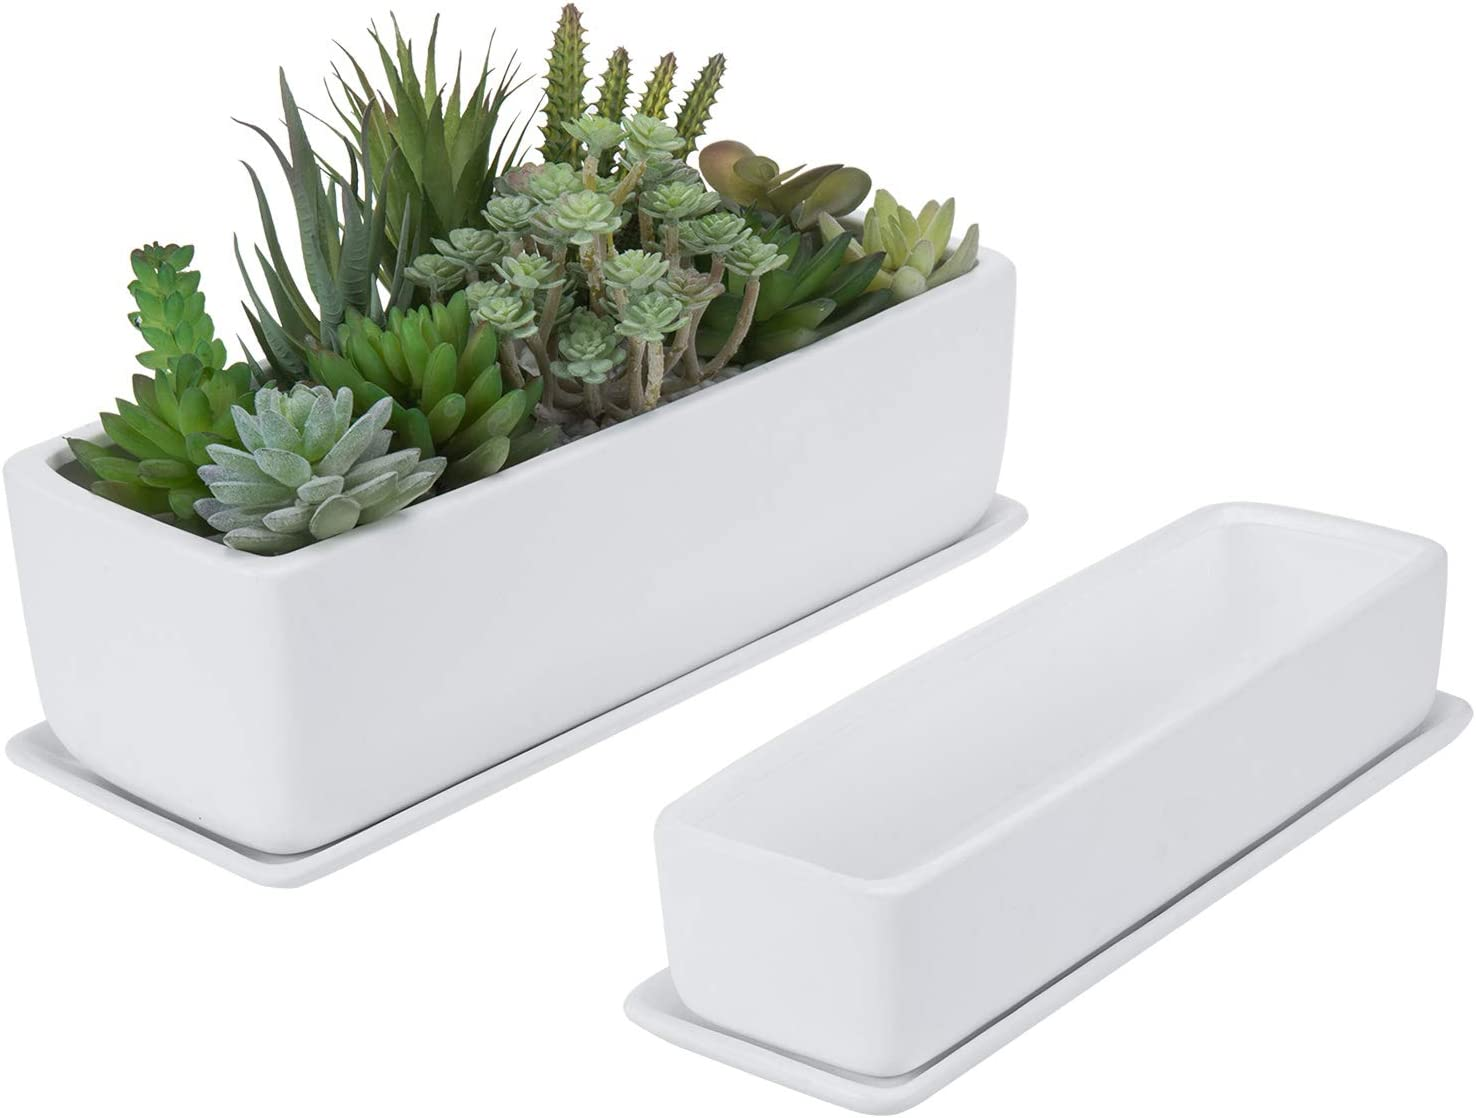 MyGift Rectangular Modern Matte White Ceramic Succulent Planter Pot Window Box with Removable Saucer, Set of 2